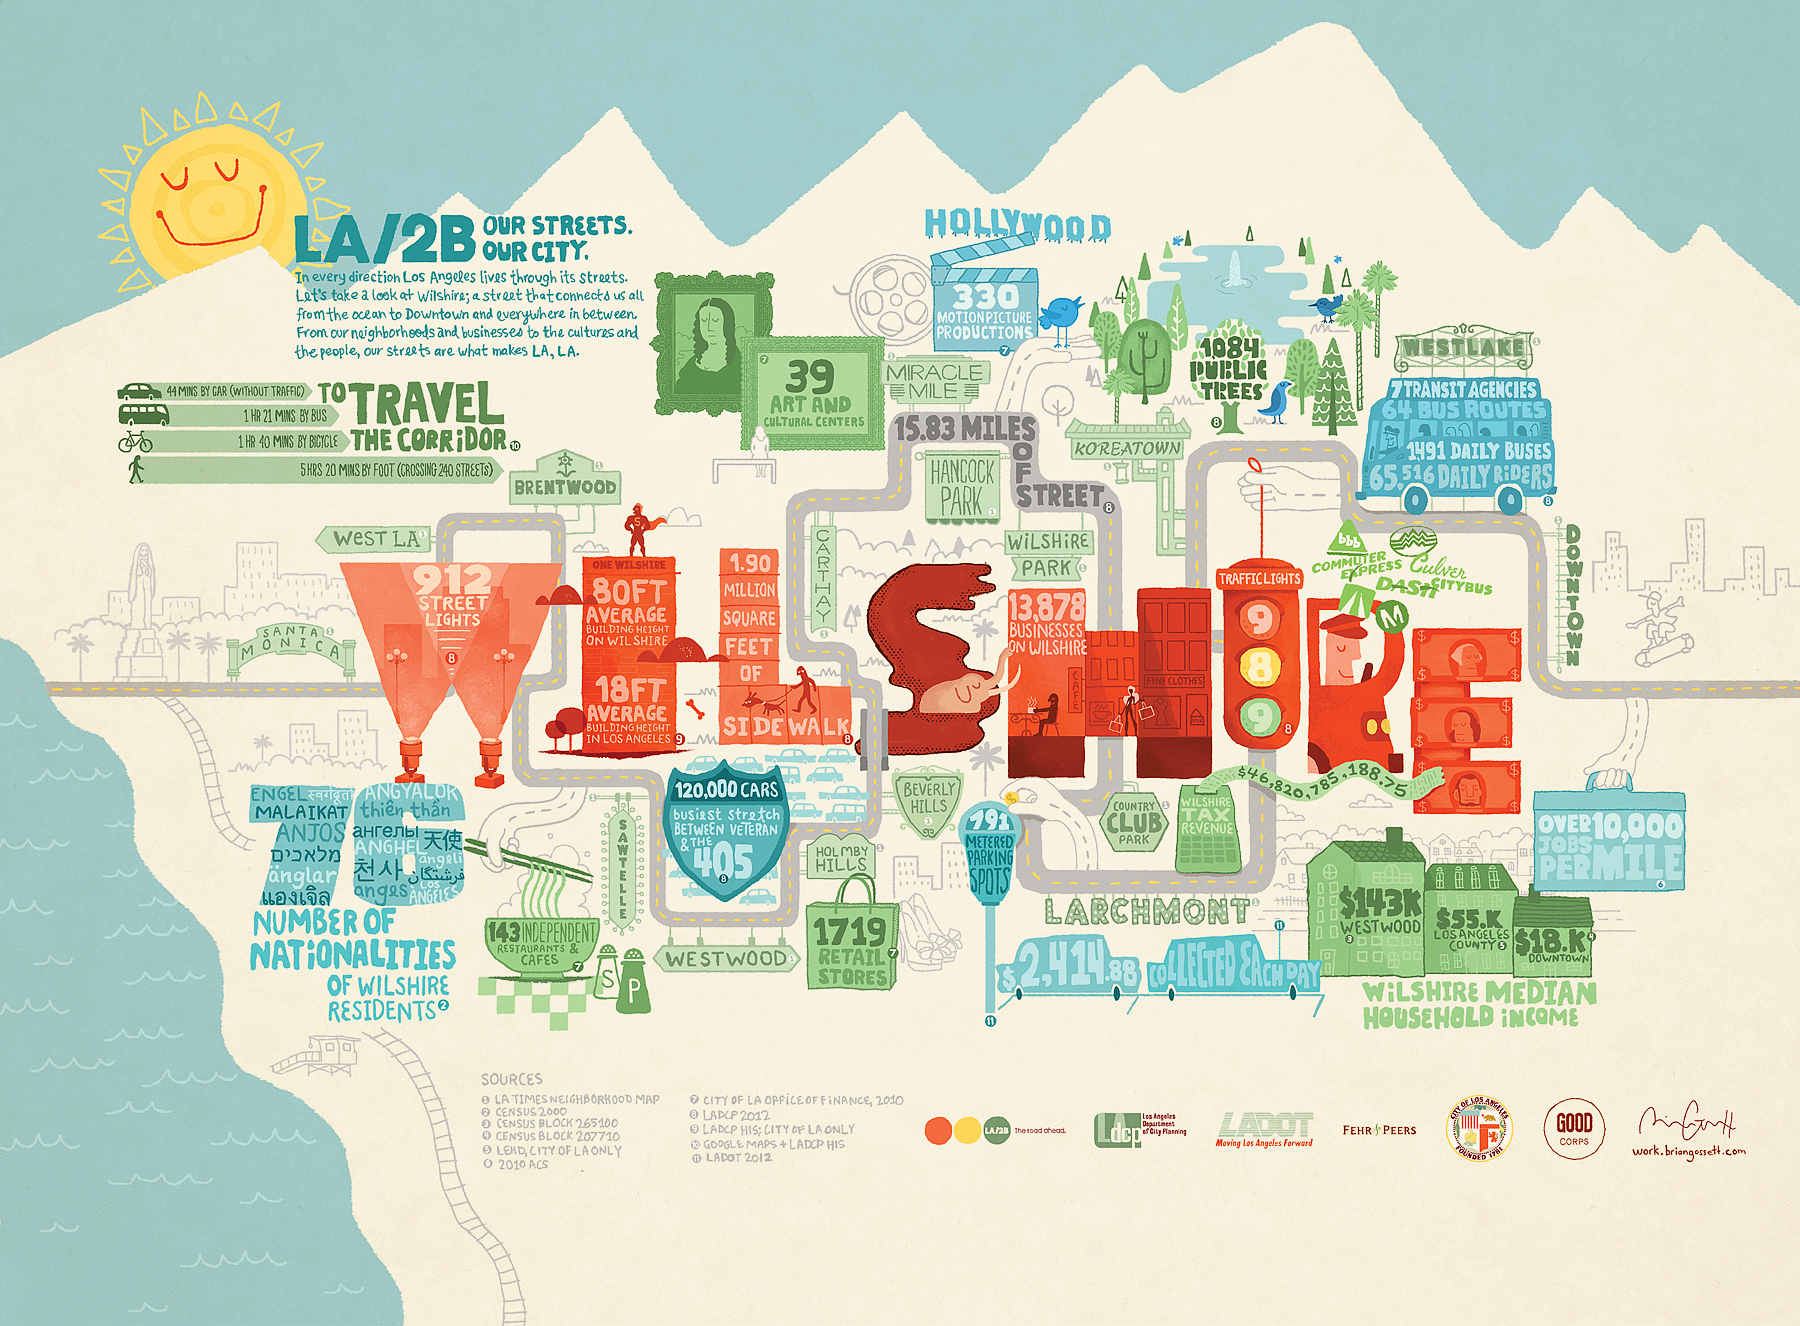 GOOD magazine commissioned an info graphic poster illustration to organize a plethora of content relating to the epic Wilshire Boulevard in Los Angeles.